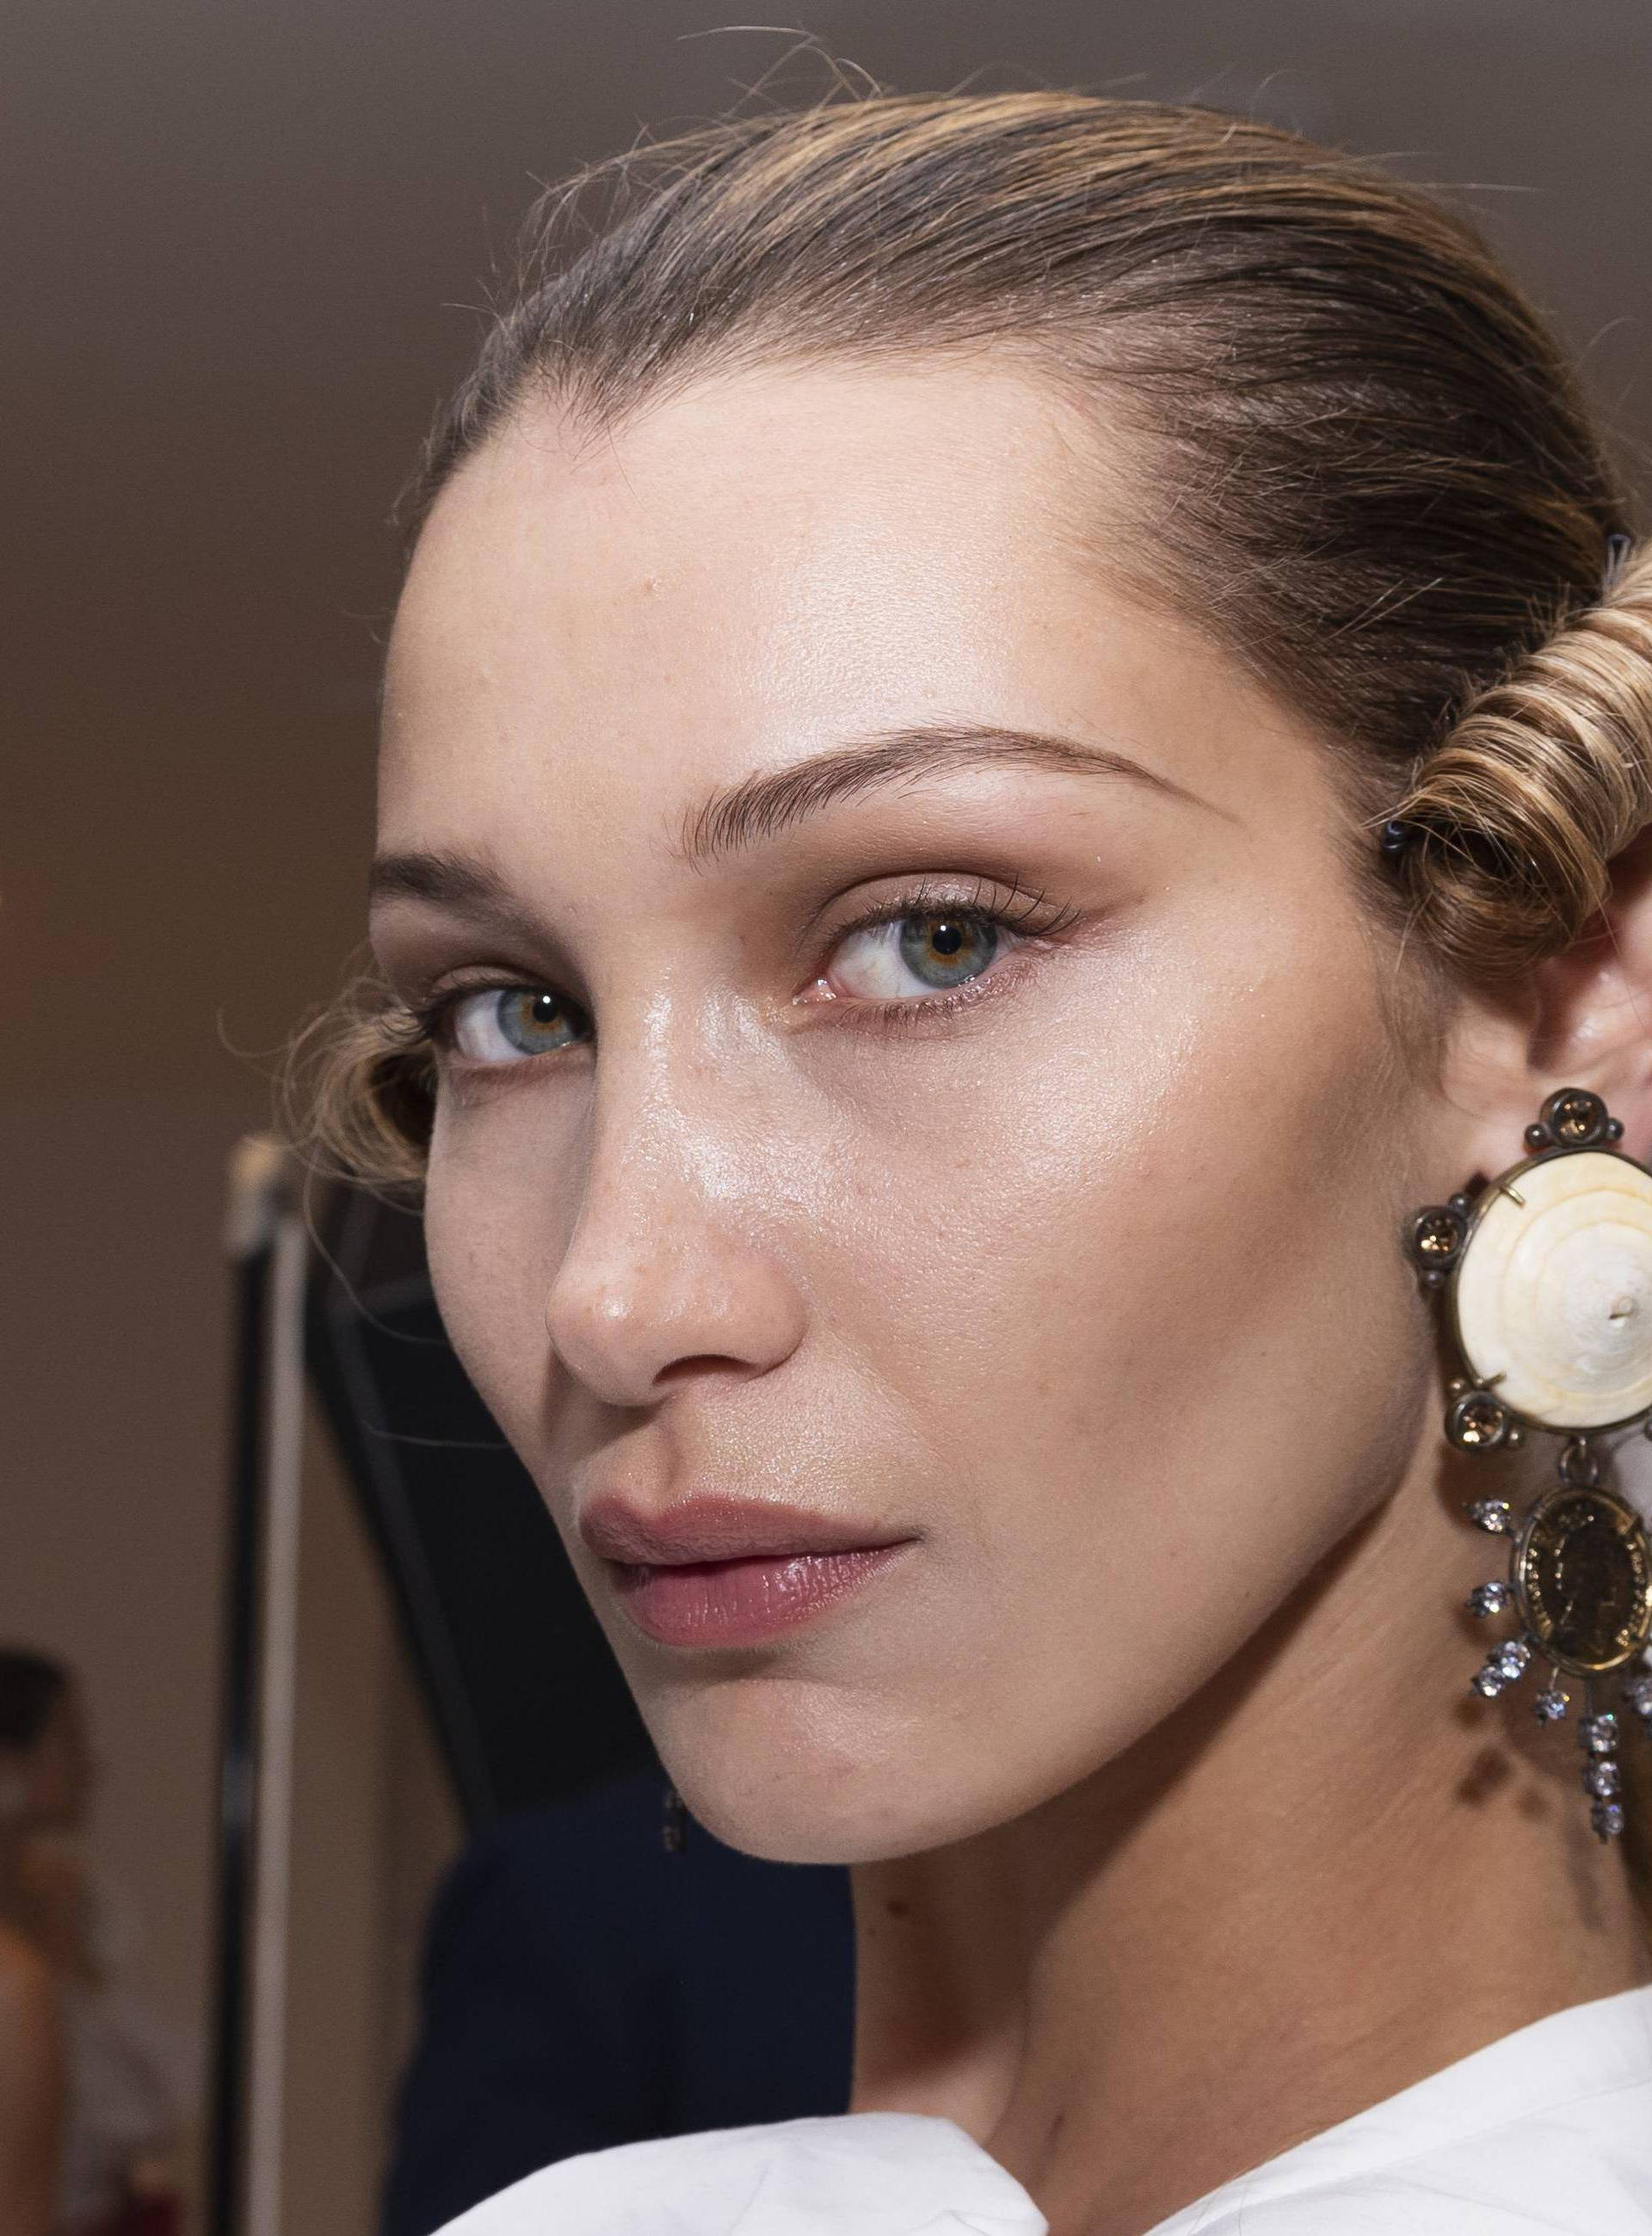 EXCLUSIVE - Bella Hadid at the backstage of Andreas Kronthaler For Vivienne Westwood SS20 Runway during Paris Fashion Week  - Paris, France 28/09/2019